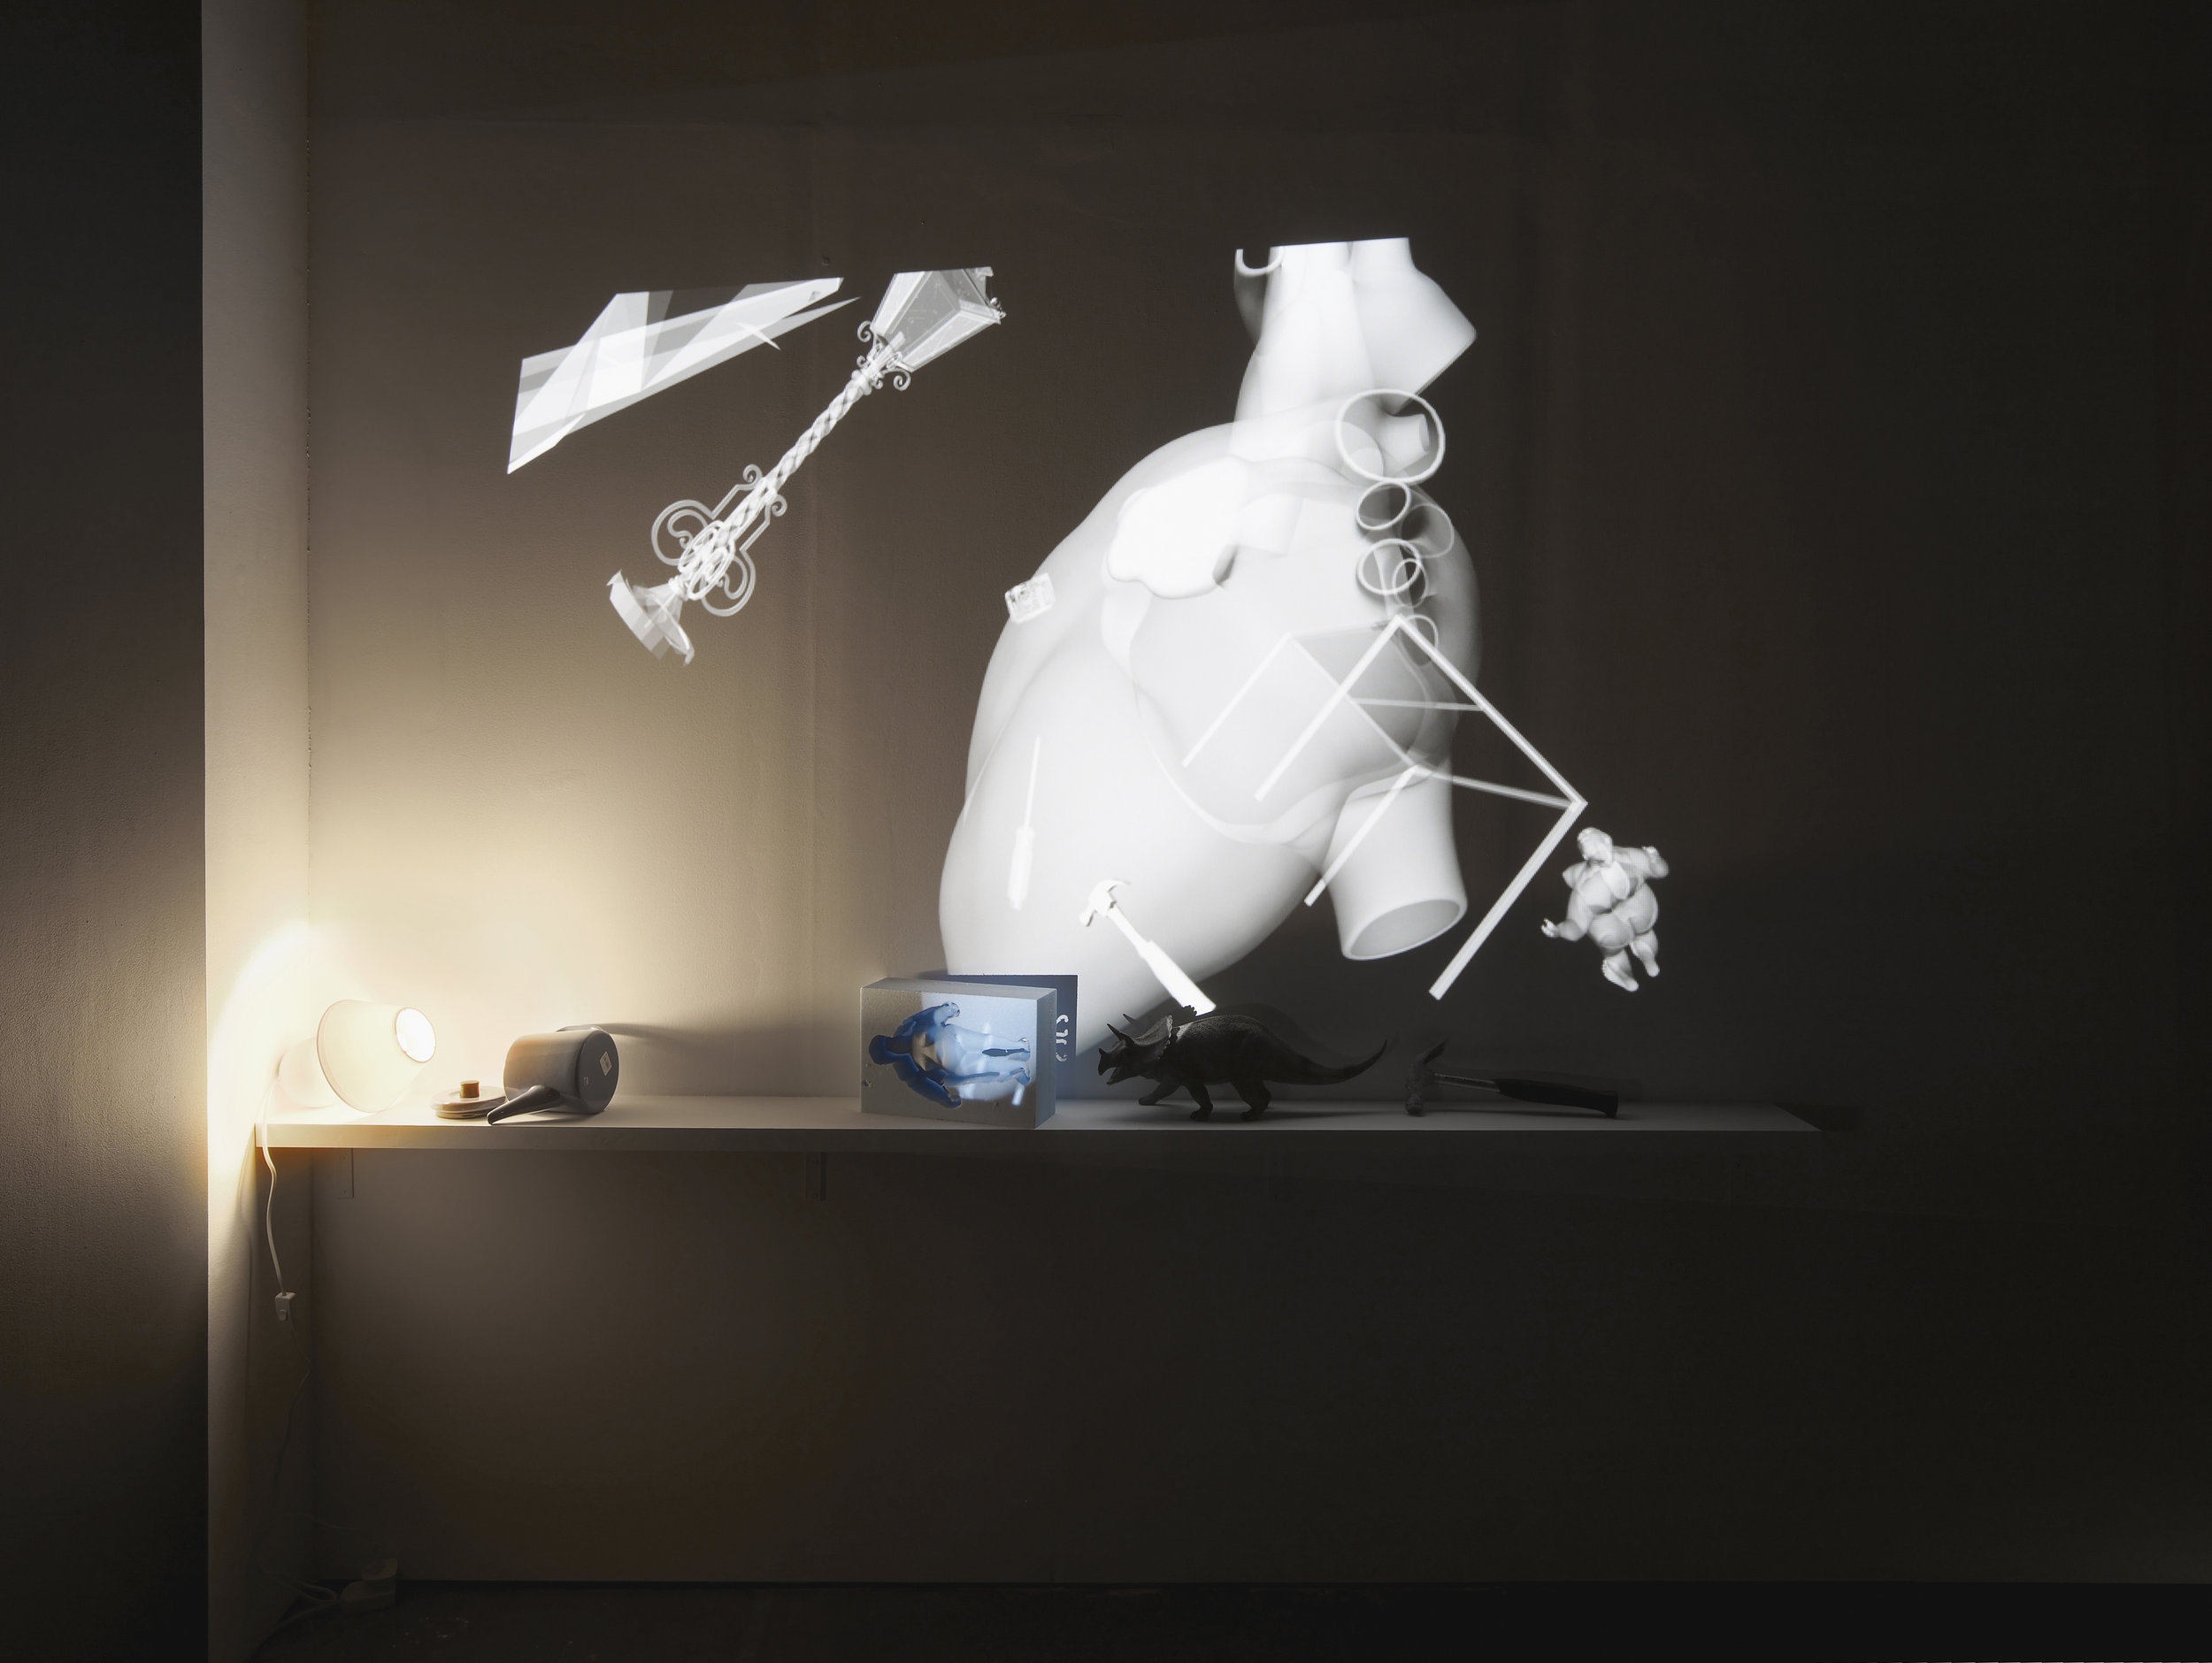 Christina Mackie  Fall Force (Installation)  2012/2017  Stereo vision projection, blu-ray disc, 3D glasses, 3D projector, sofa, teapot, hammer, plastic dinosaur, foam woman and lamp  Dimensions variable